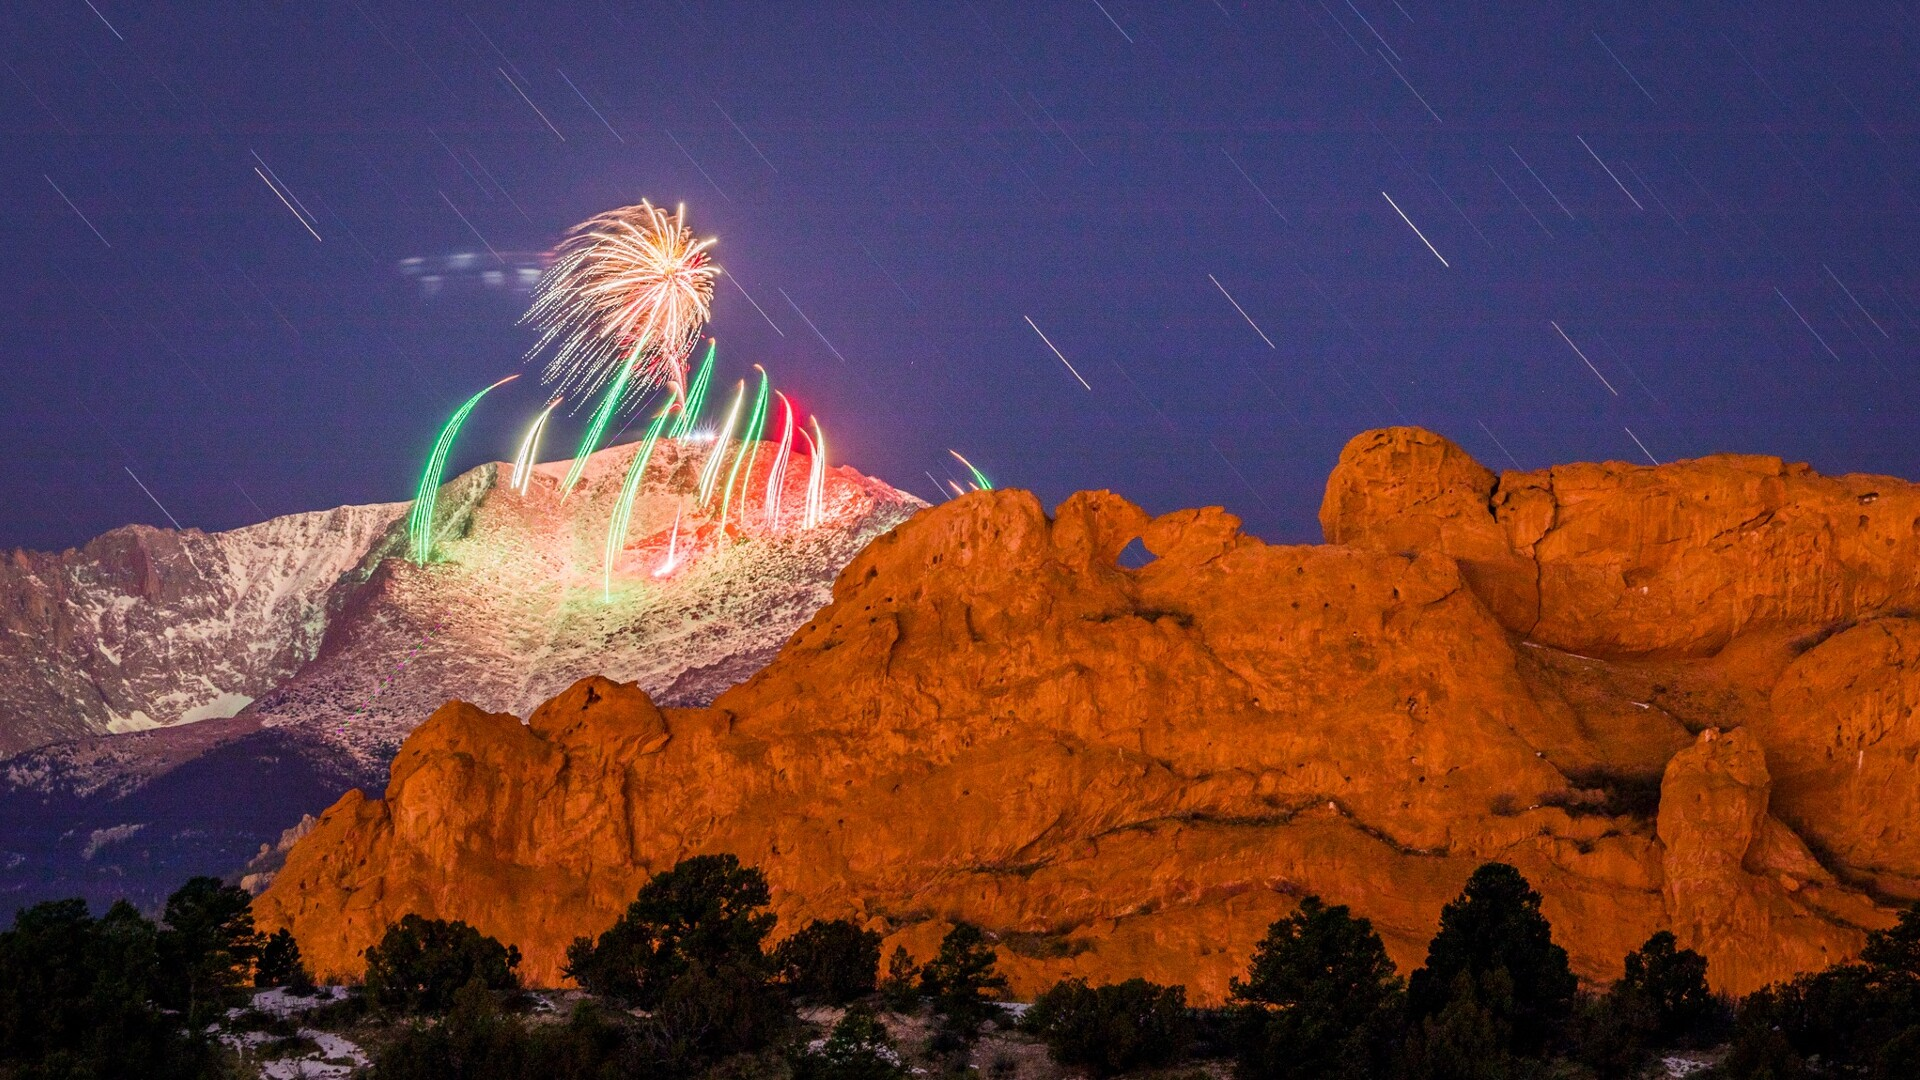 New Years Eve Fireworks on Pikes Peak from Forrest Boutin Photography.jpg